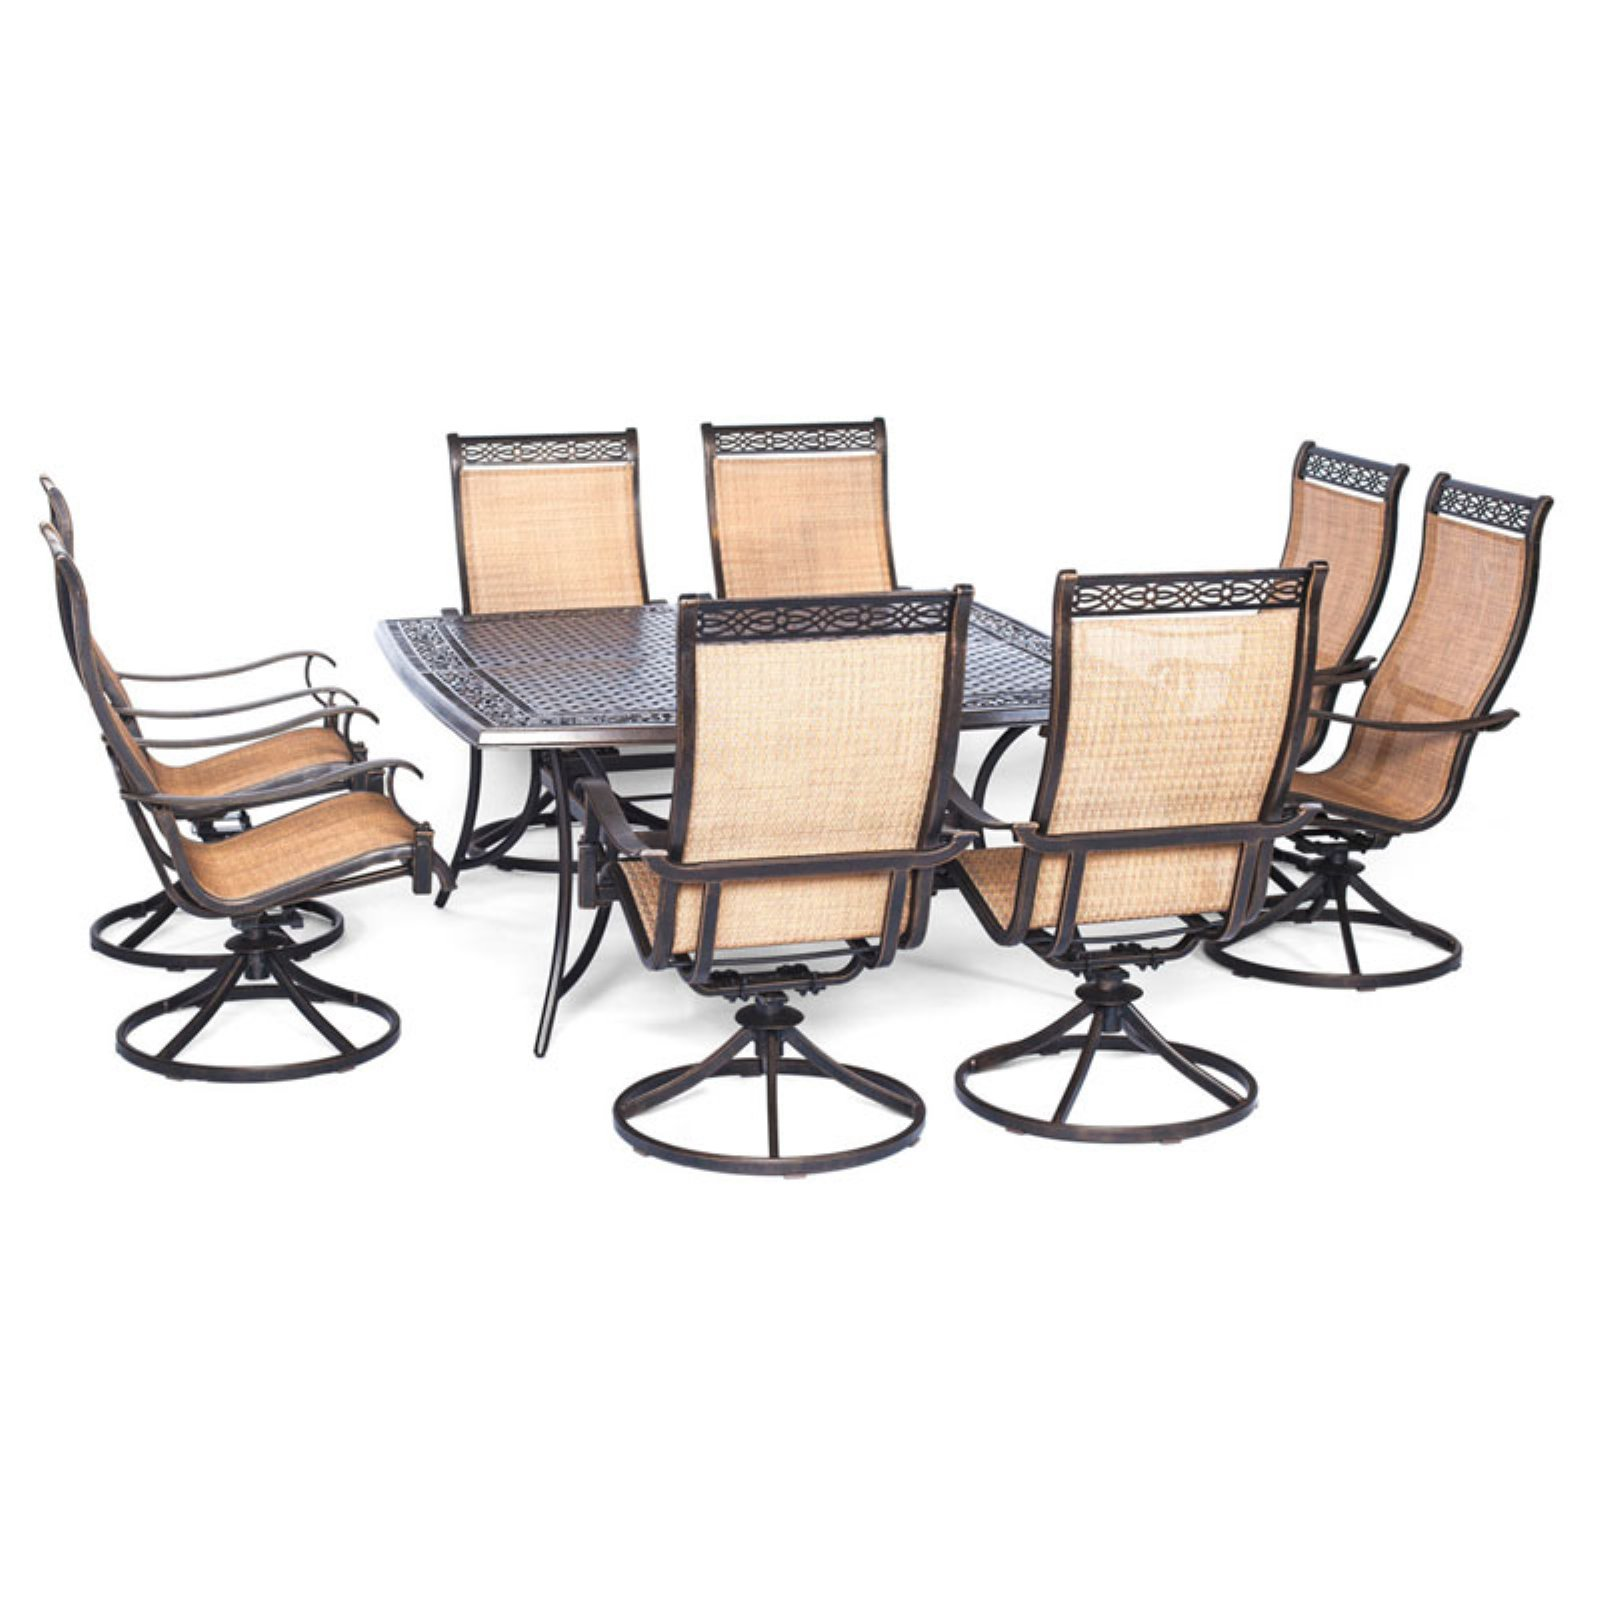 Outdoor Manor 9-Piece Outdoor Dining Set with Large Square Table and 8 Swivel Rockers, Cedar/Bronze